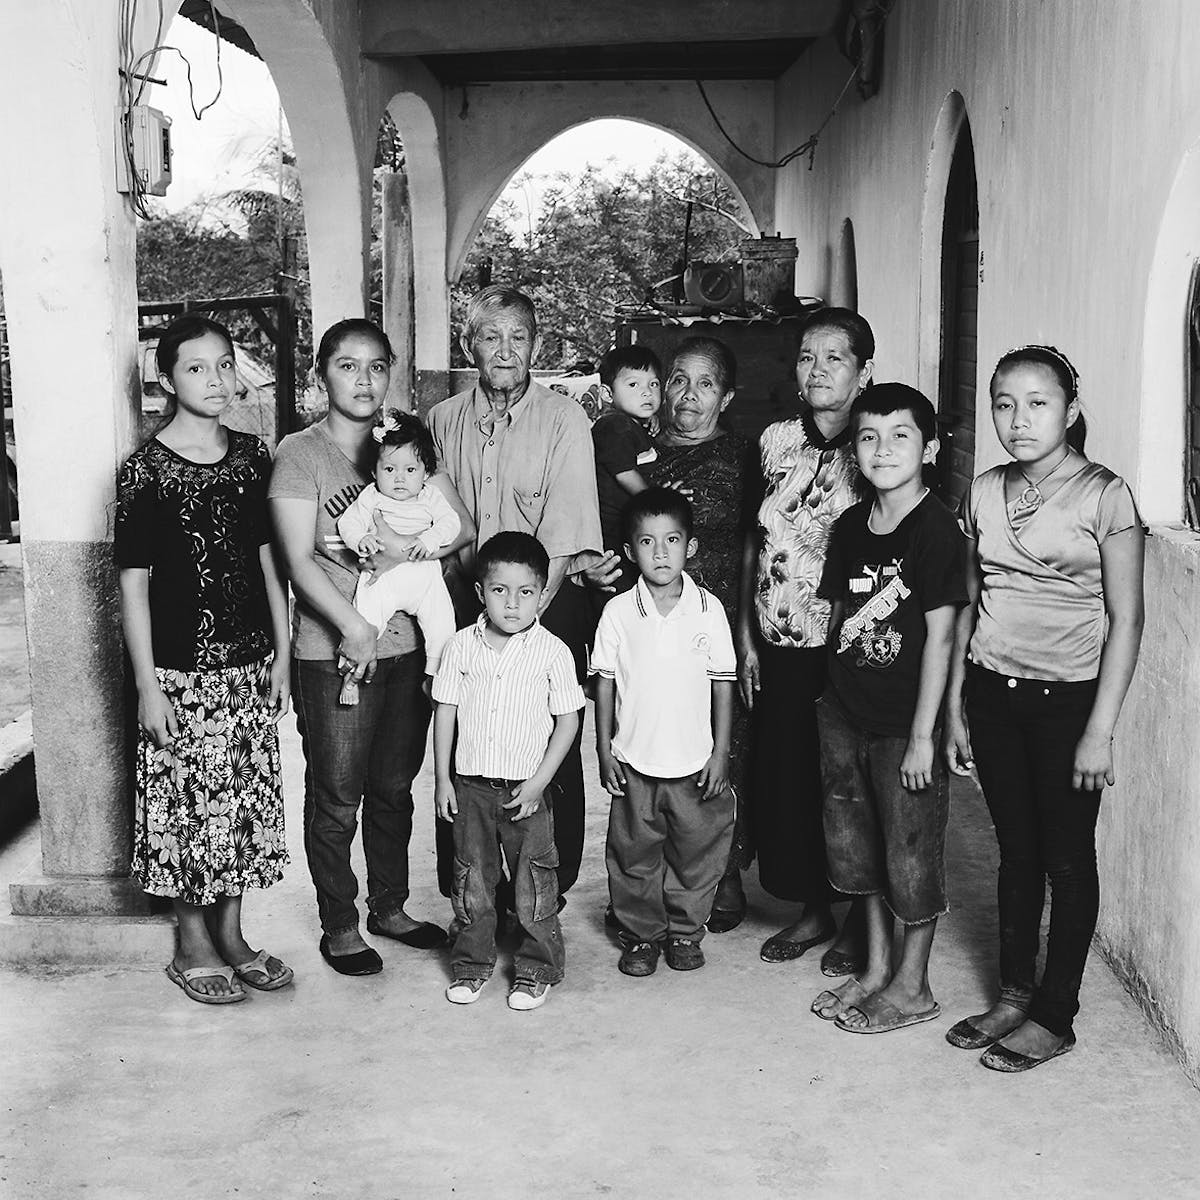 US and Mexico immigration: Portraits of Guatemalan refugees